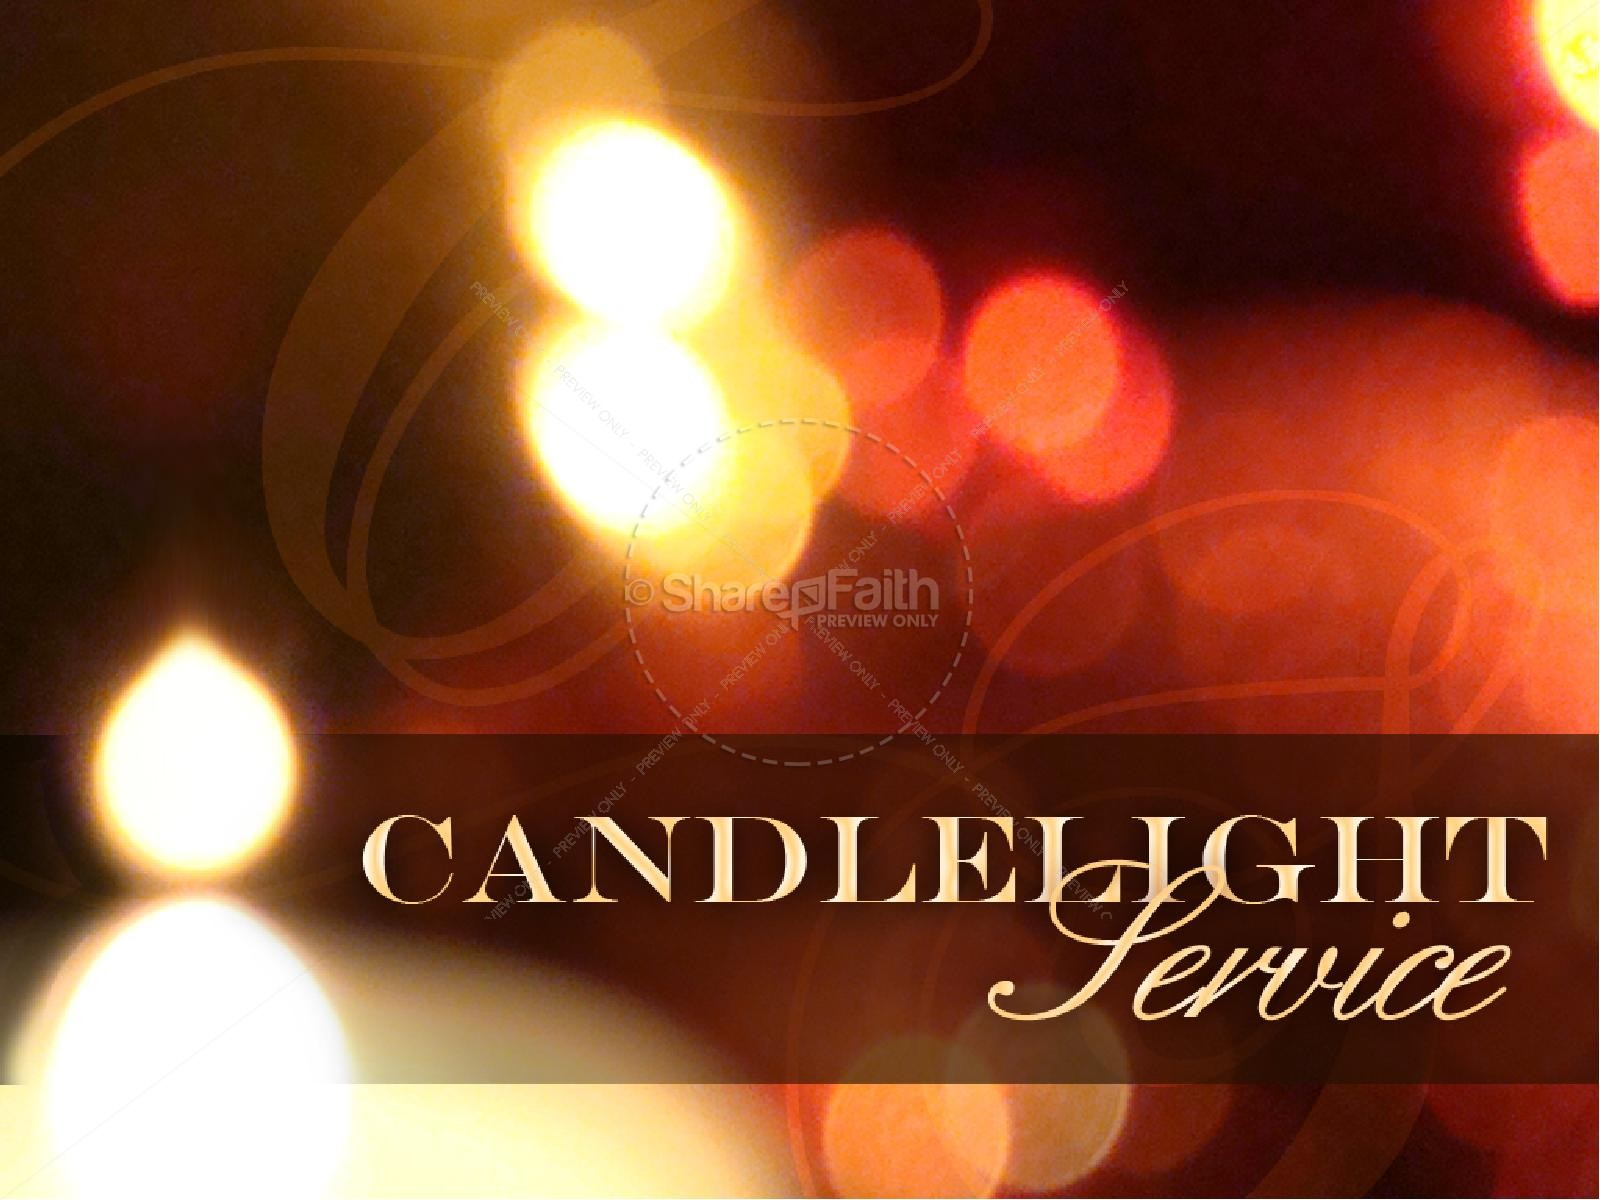 Candlelight Service PowerPoint | slide 1